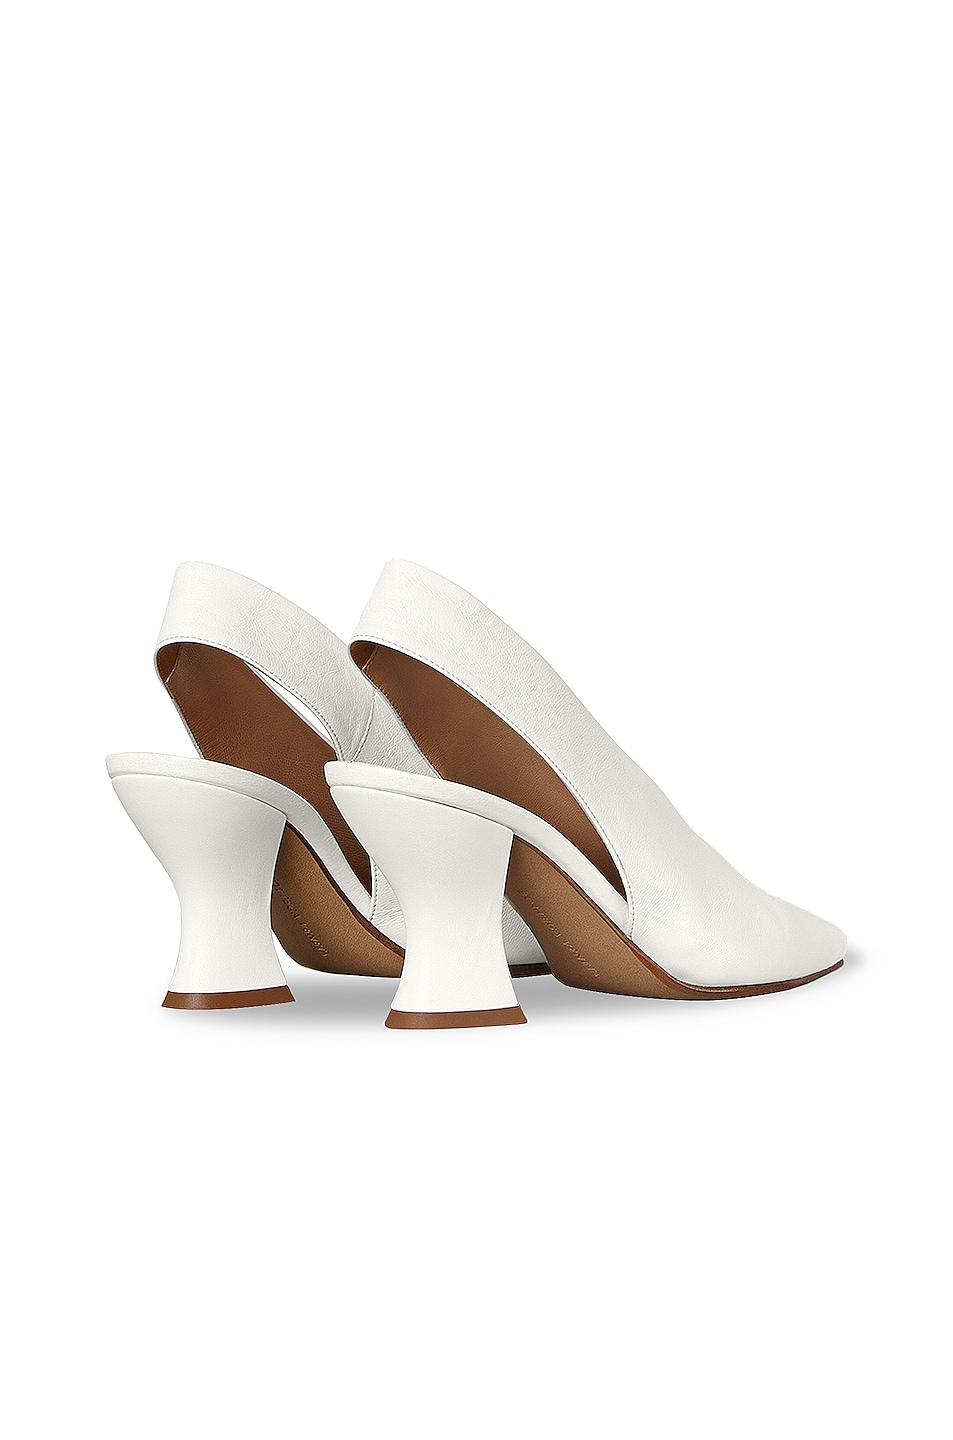 Image 3 of Bottega Veneta Almond Slingback Kitten Heels in Optic White